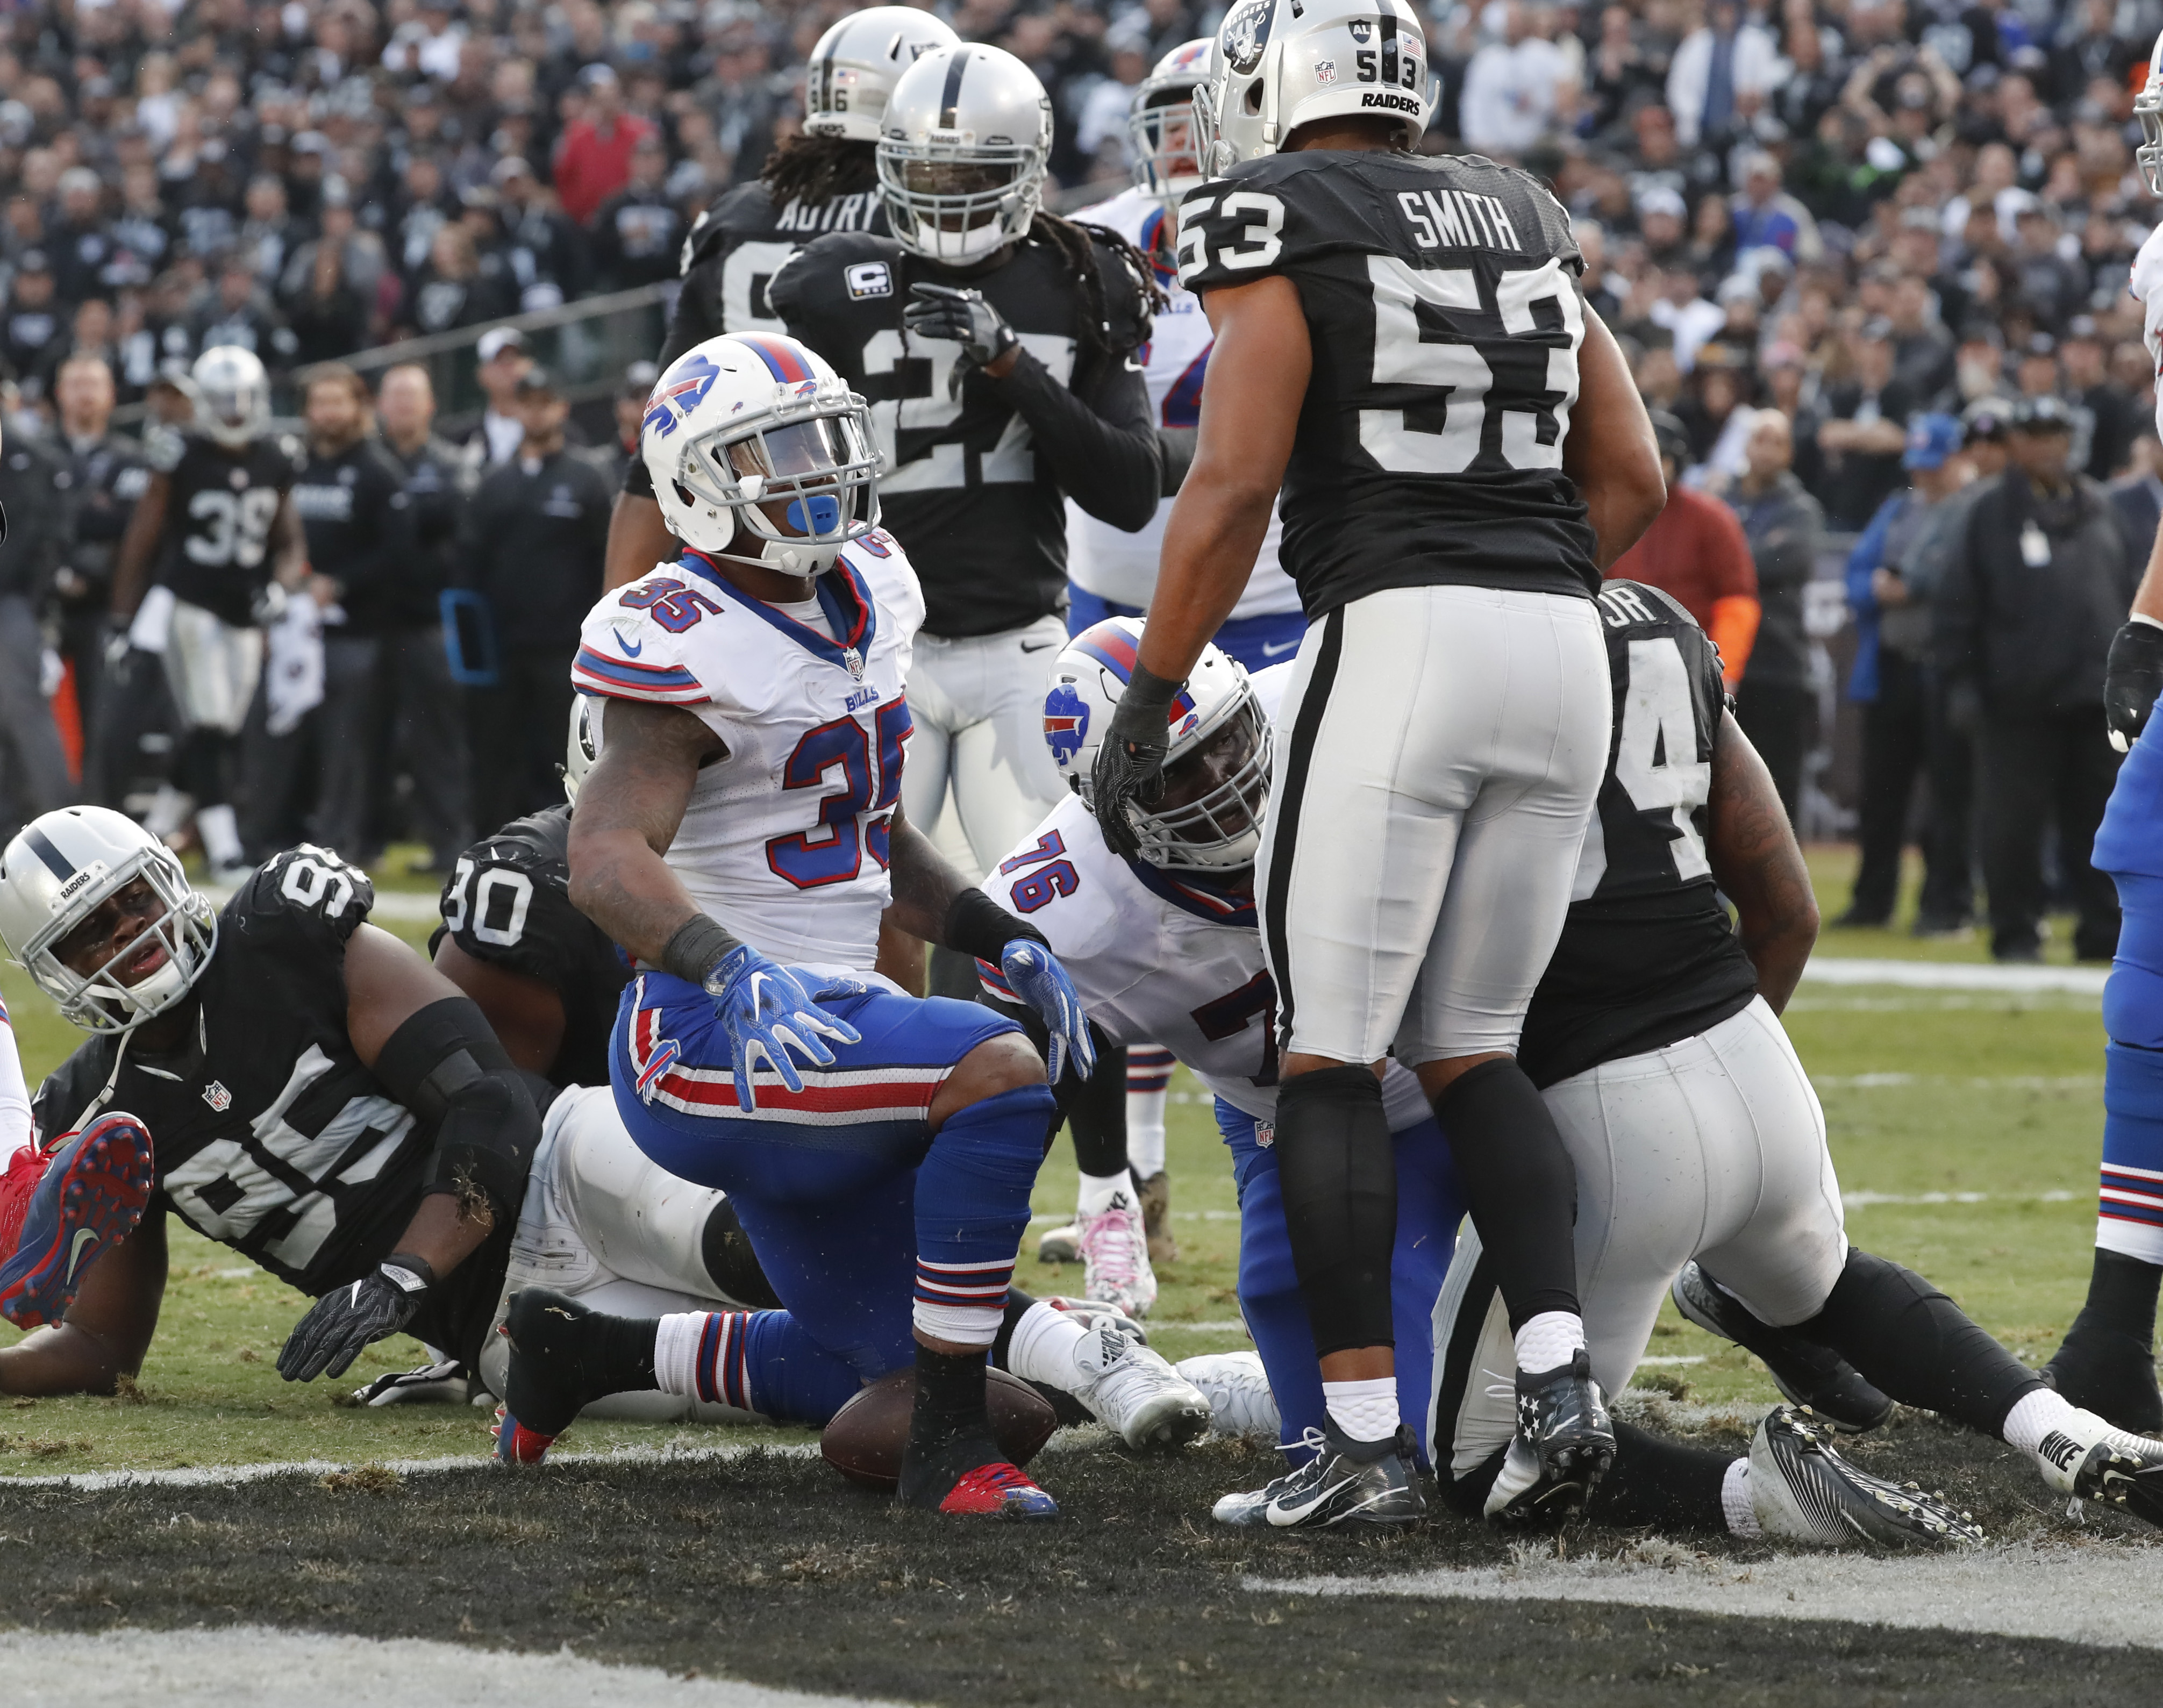 Mike Gillislee scores a touchdown that gave the Bills a 24-9 lead in the third quarter. (Harry Scull Jr./Buffalo News)